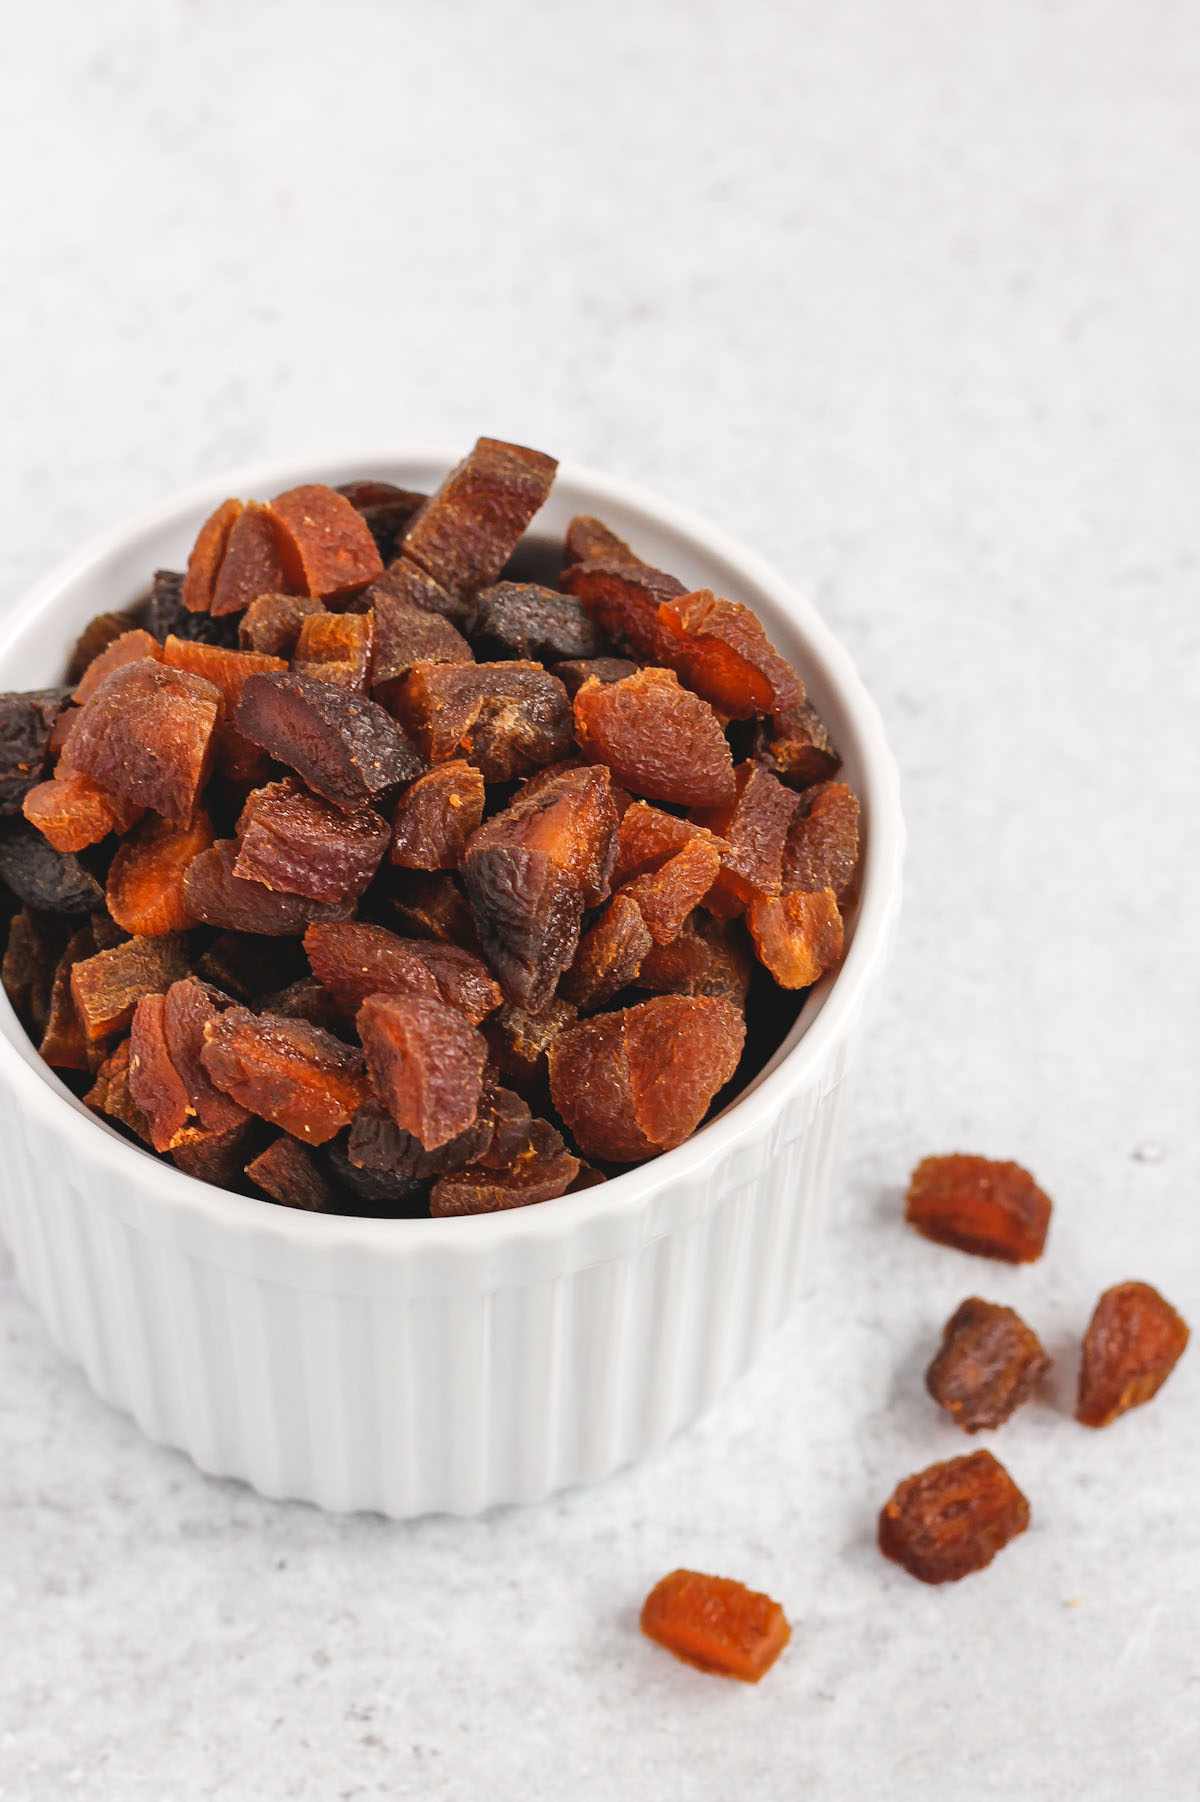 chopped dried apricots in a small white bowl